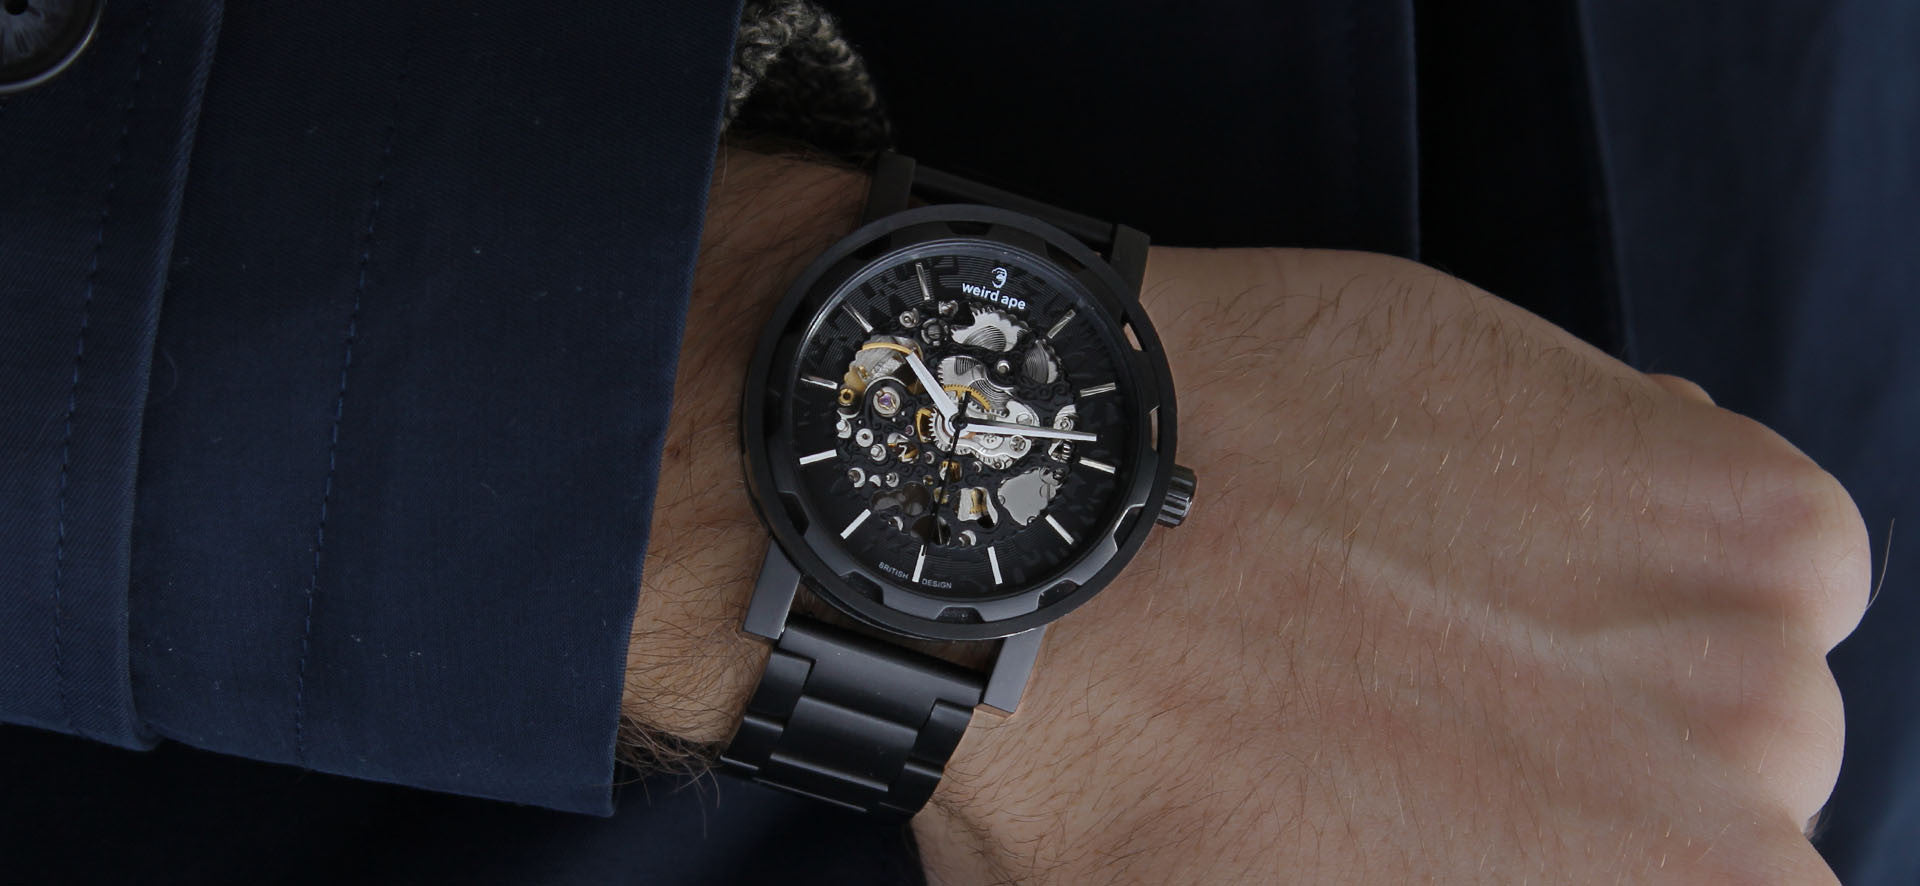 Black skeleton watch with a black strap in a lifestyle image